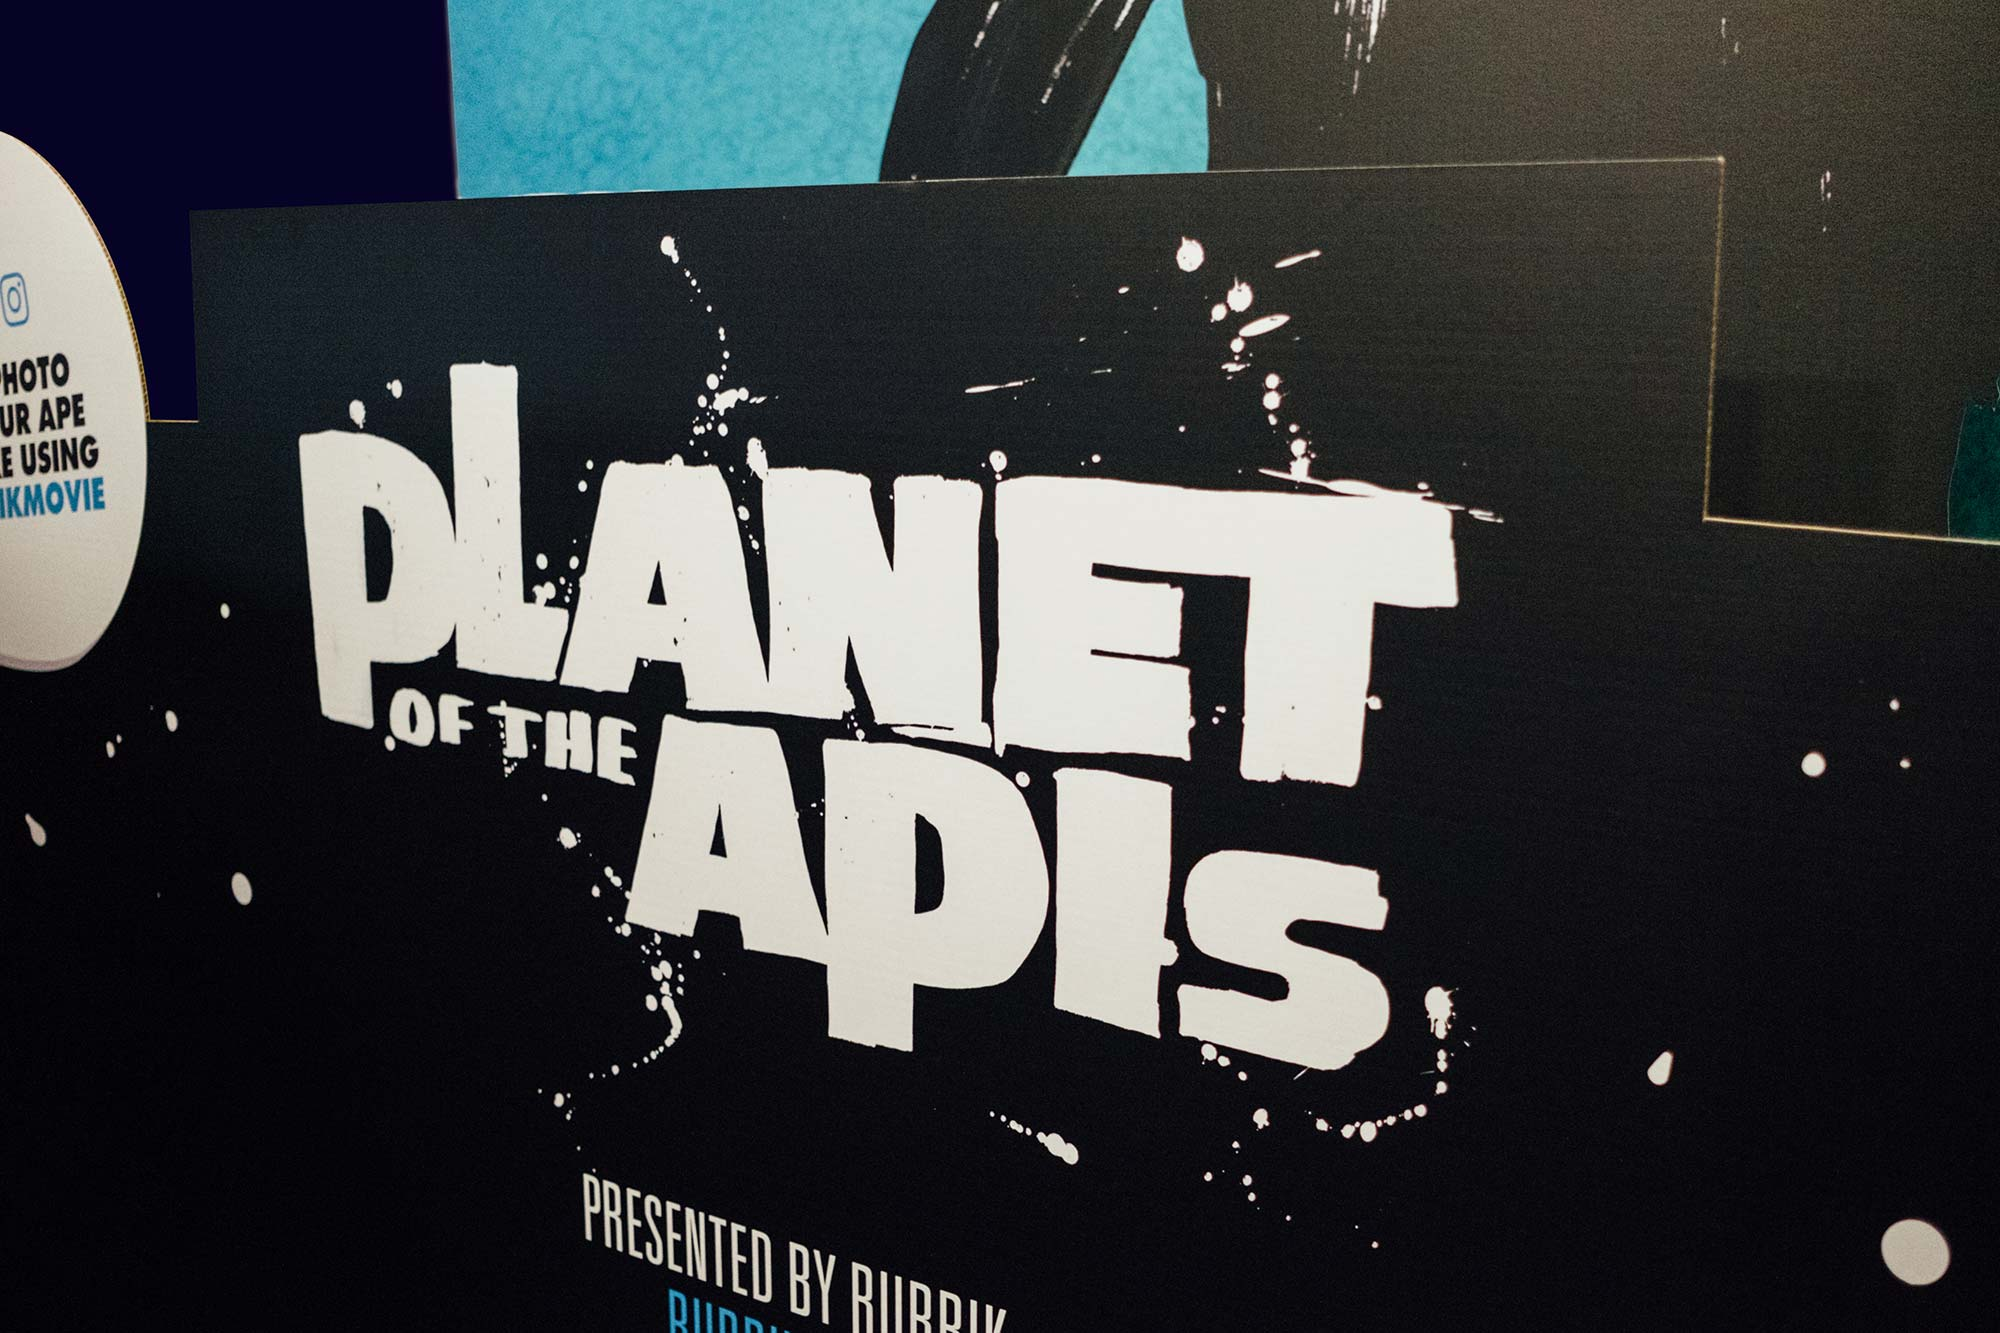 Planet of the Apes Typography